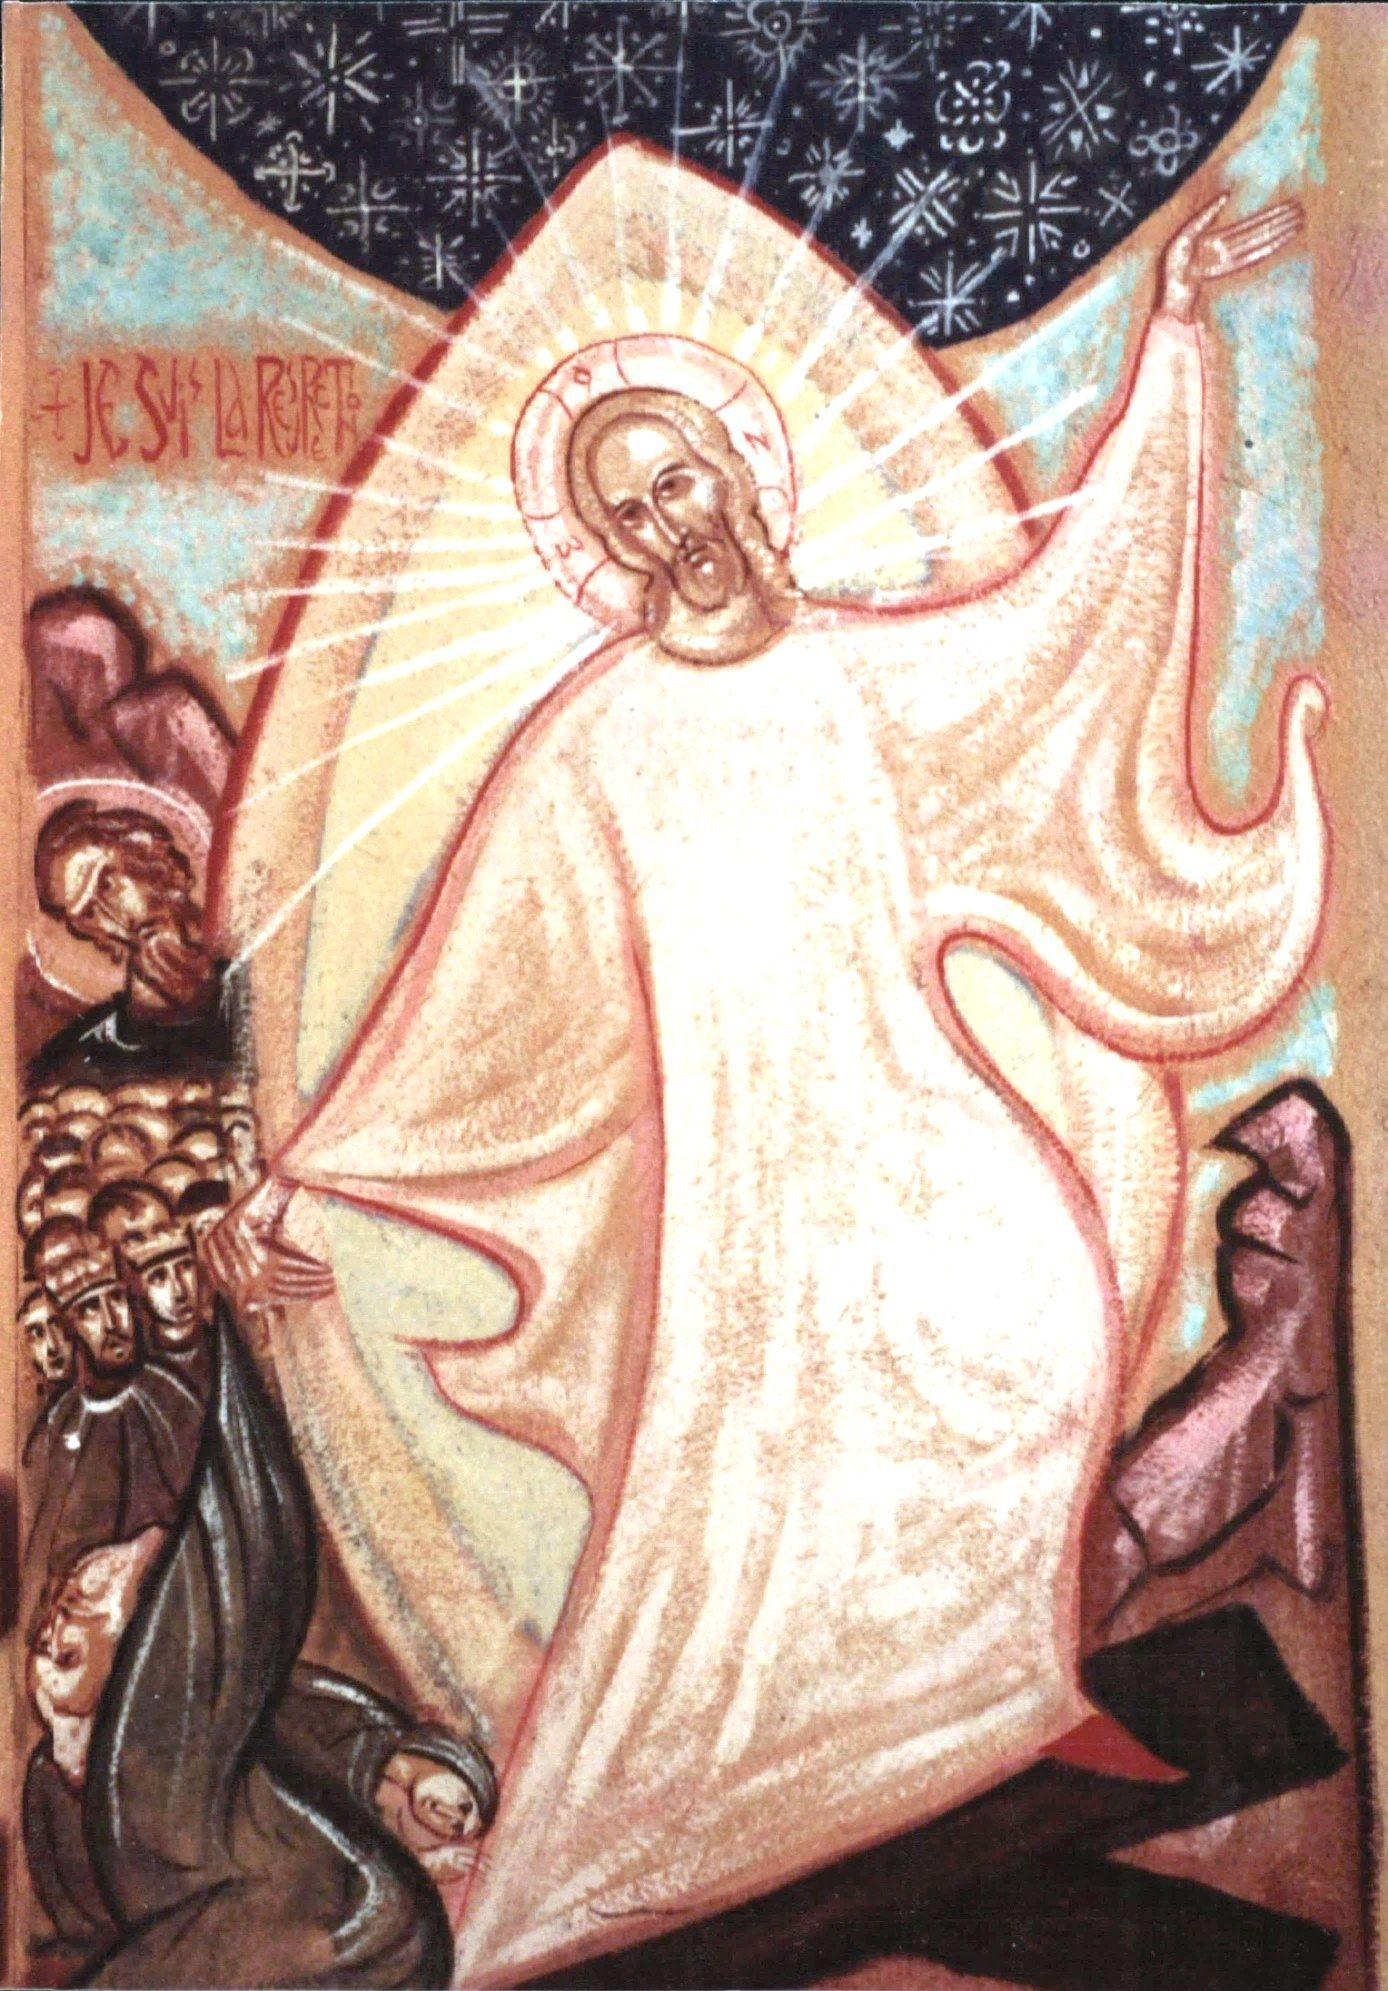 The Resurrection, by the hand of St John of Saint-Denis